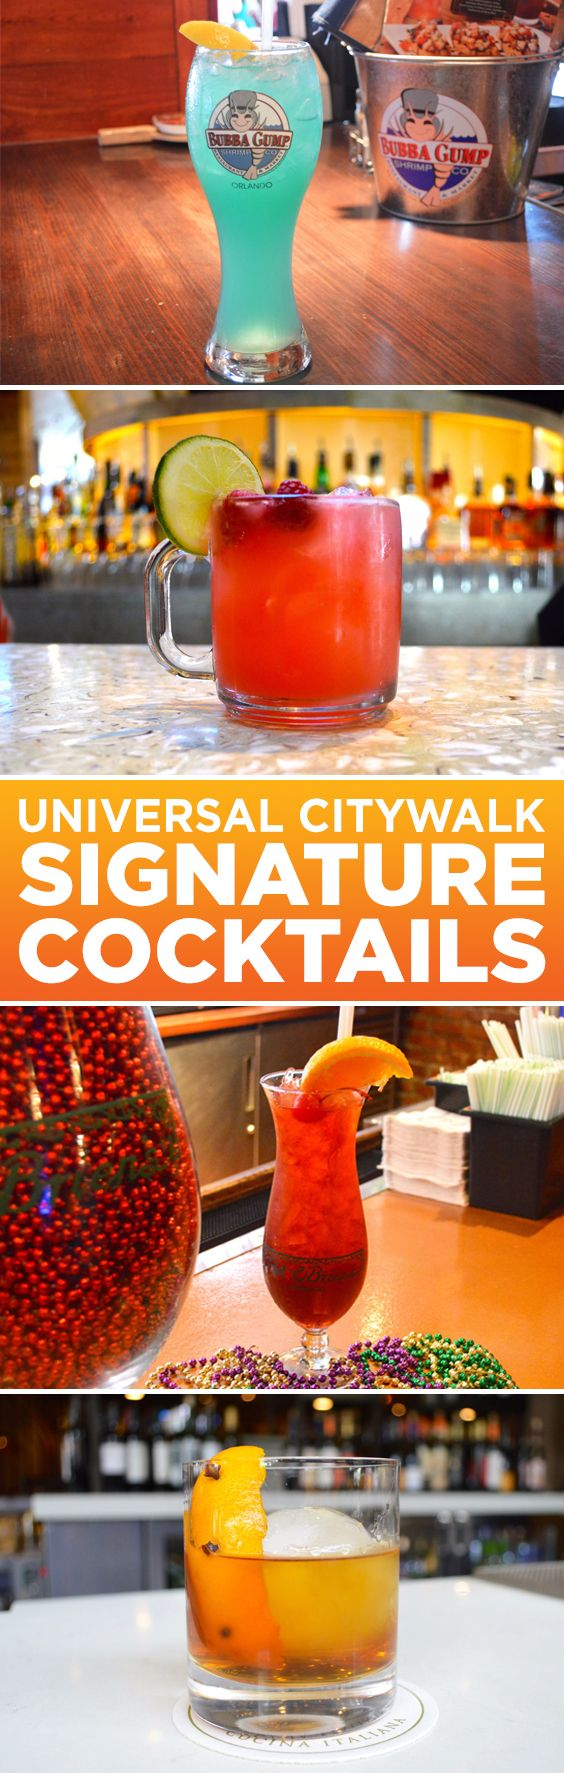 Check out this list of must-try specialty cocktails at five of Universal CityWalk's hottest restaurants.